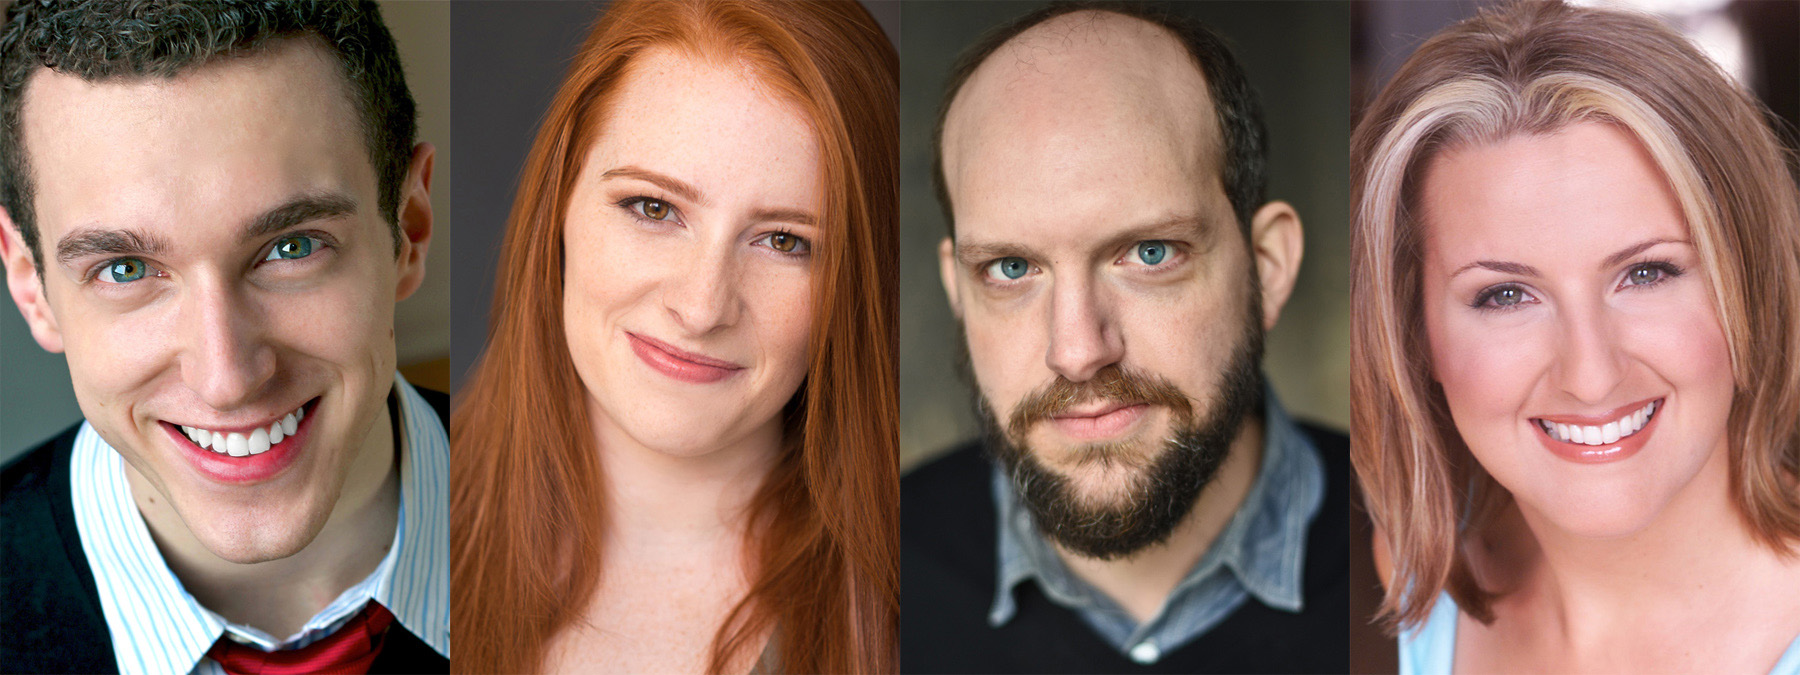 Casting Announced for Griffin Theatre's BAT BOY: THE MUSICAL - June 4 - July 24, 2016 at The Den Theatre - Chicago Premiere! 1 Griffin Theatre Companyis pleased to announce casting for the Chicago premiere of the off-Broadway hitBAT BOY: THE MUSICAL,with book byKeythe FarleyandBrian Flemming,music and lyrics byLaurence O'Keefe(Legally Blonde, Heathers: The Musical),direction byScott Weinstein, music direction byCharlotte Rivard-Hosterand choreography byRhett Guter.